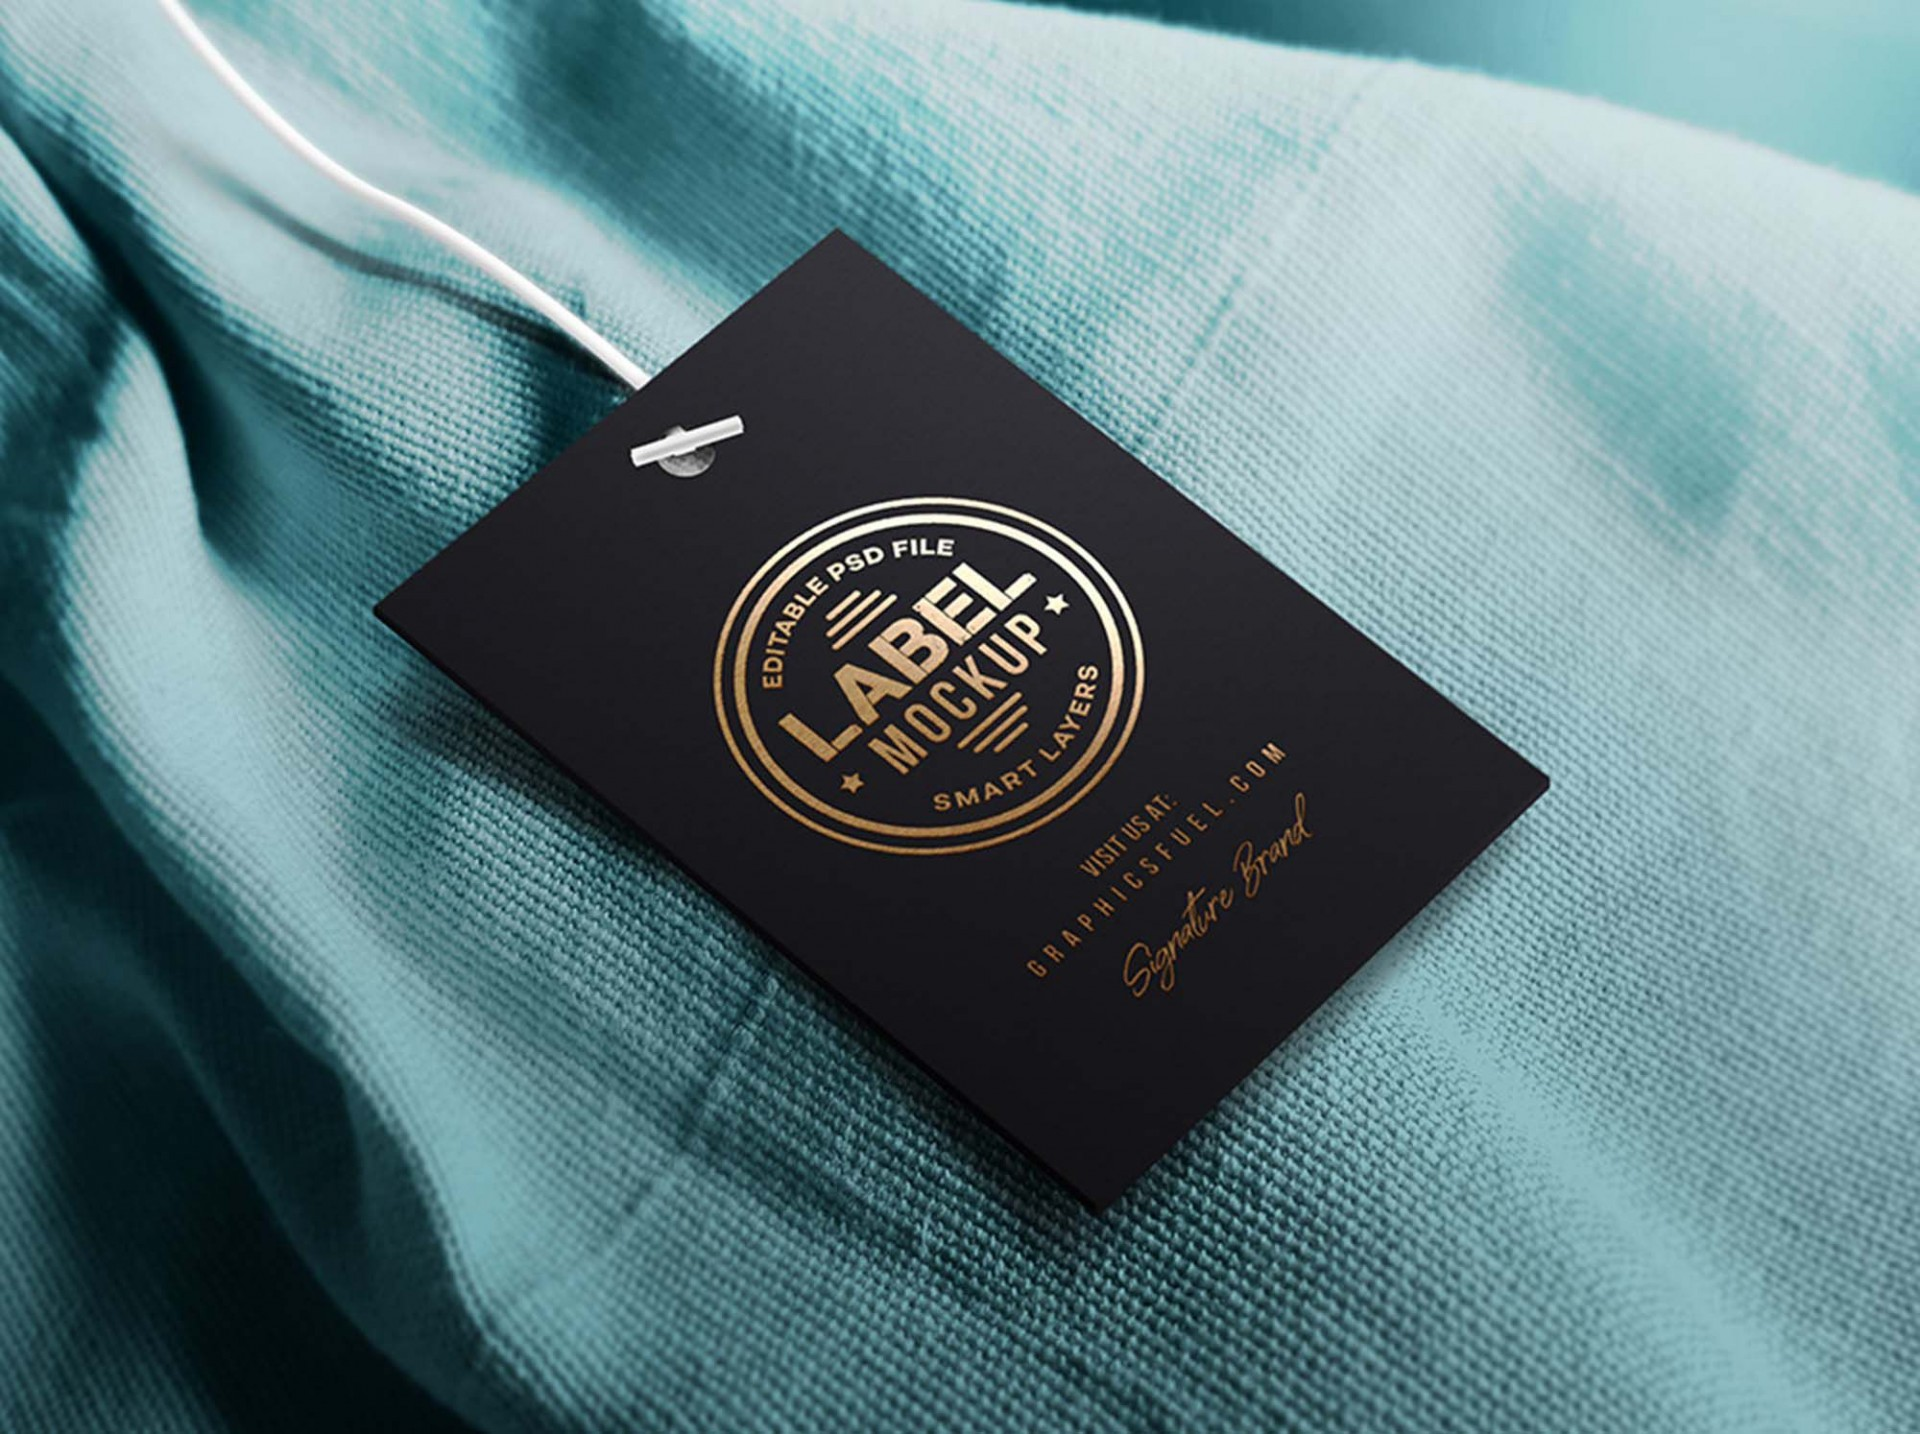 005 Amazing Free Clothing Label Design Template Concept  Templates Download1920